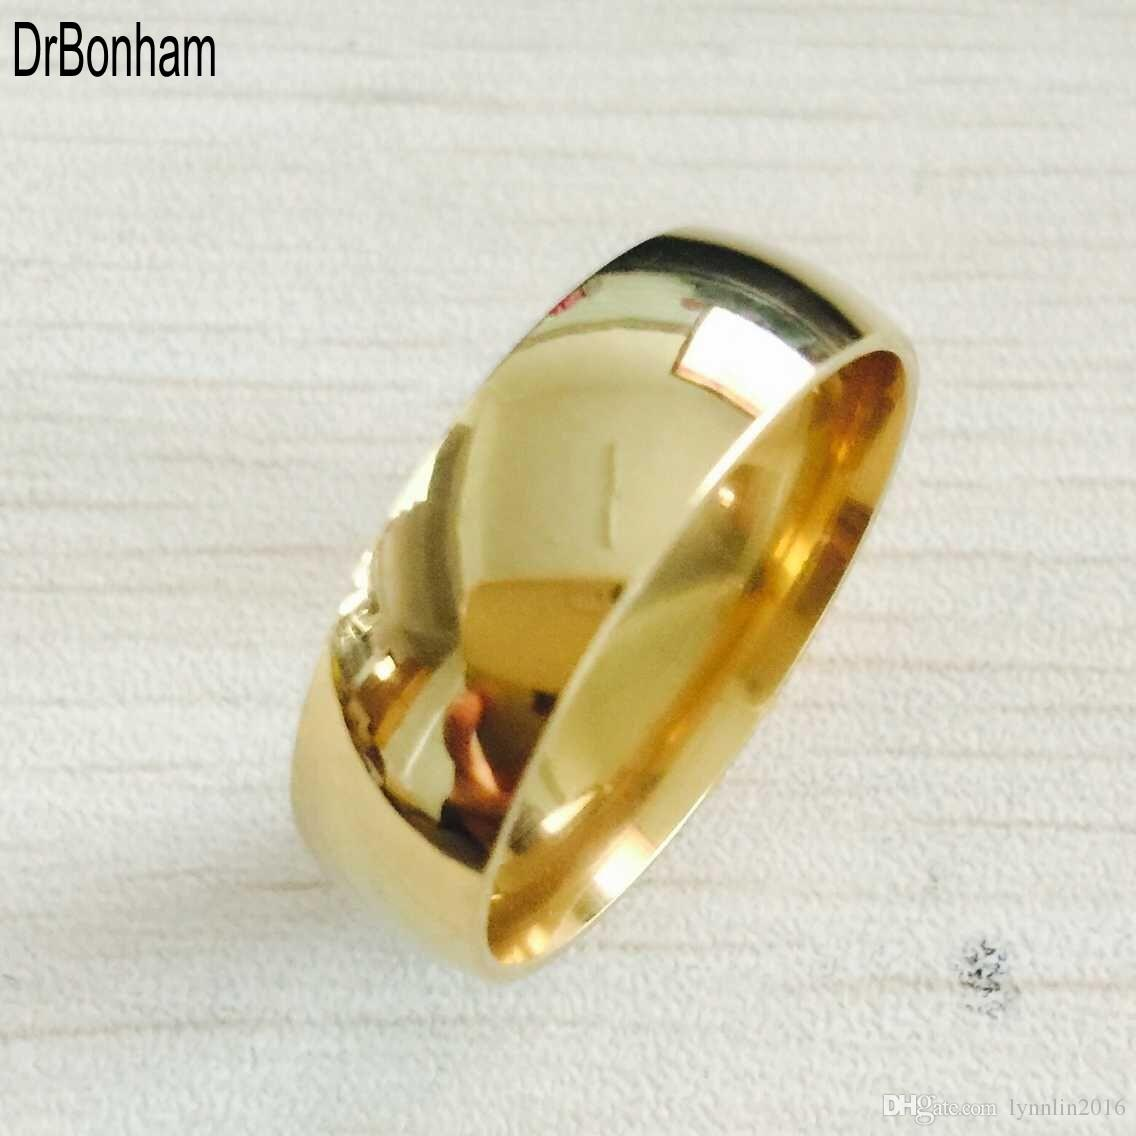 future stone past band engagement rings mainye bands diamond present ring gold